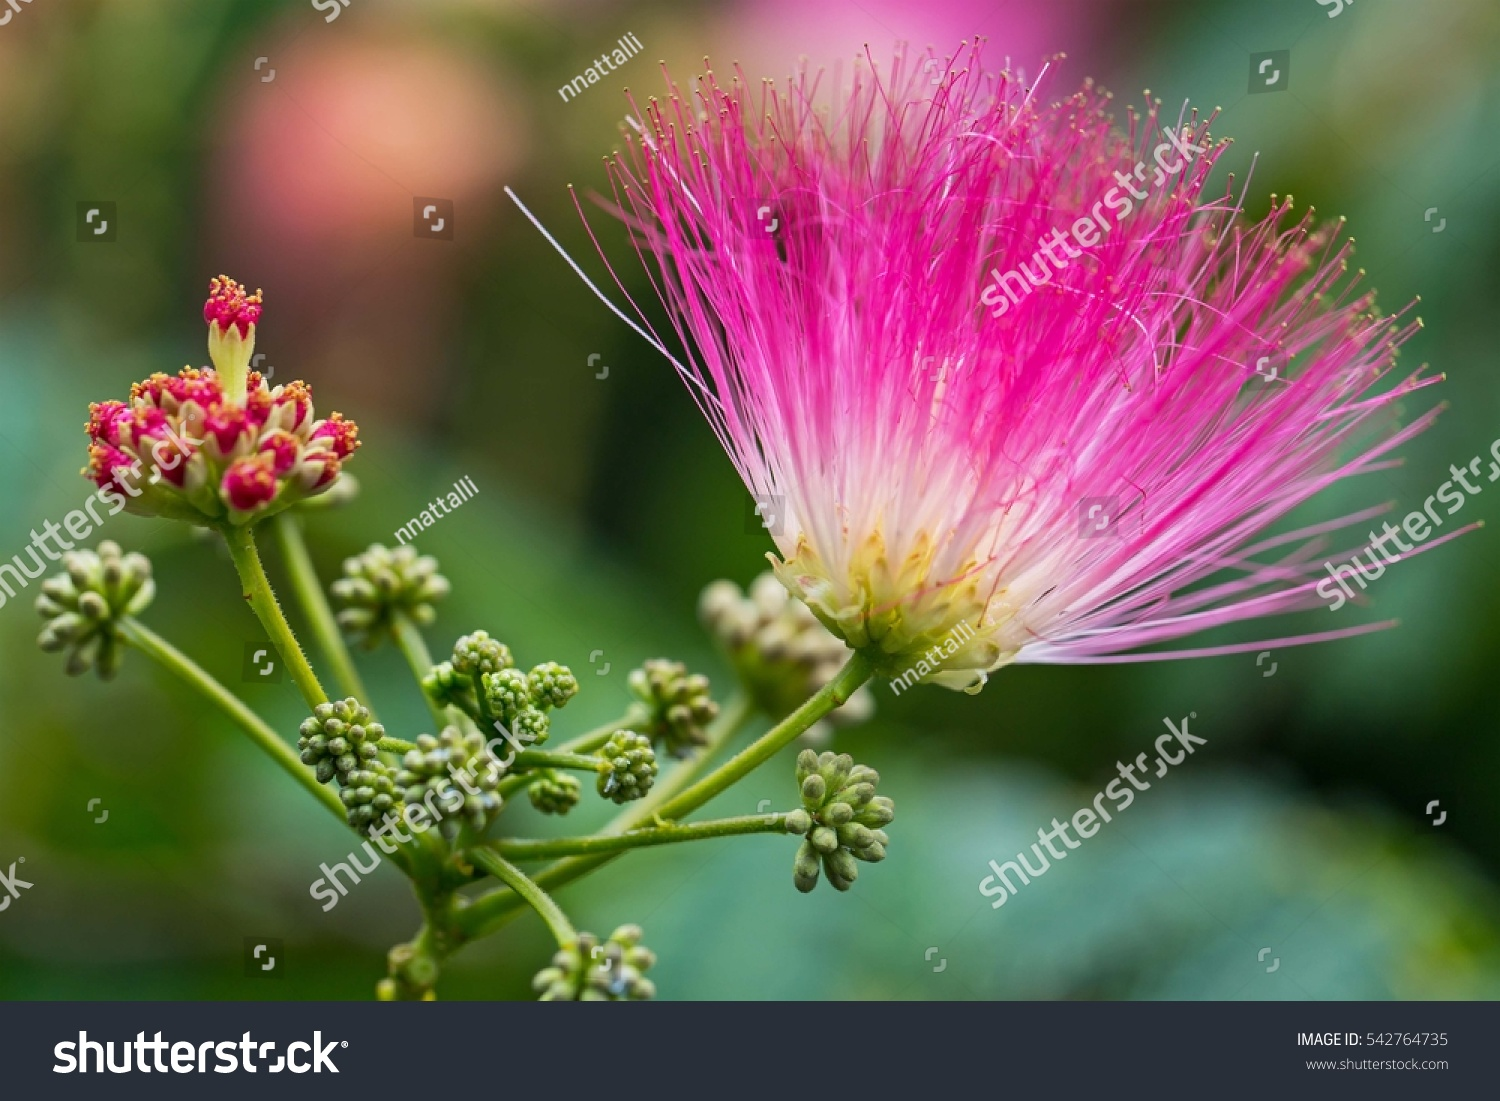 Royalty Free Pink Fluffy Flowers On Blooming Albizia 542764735